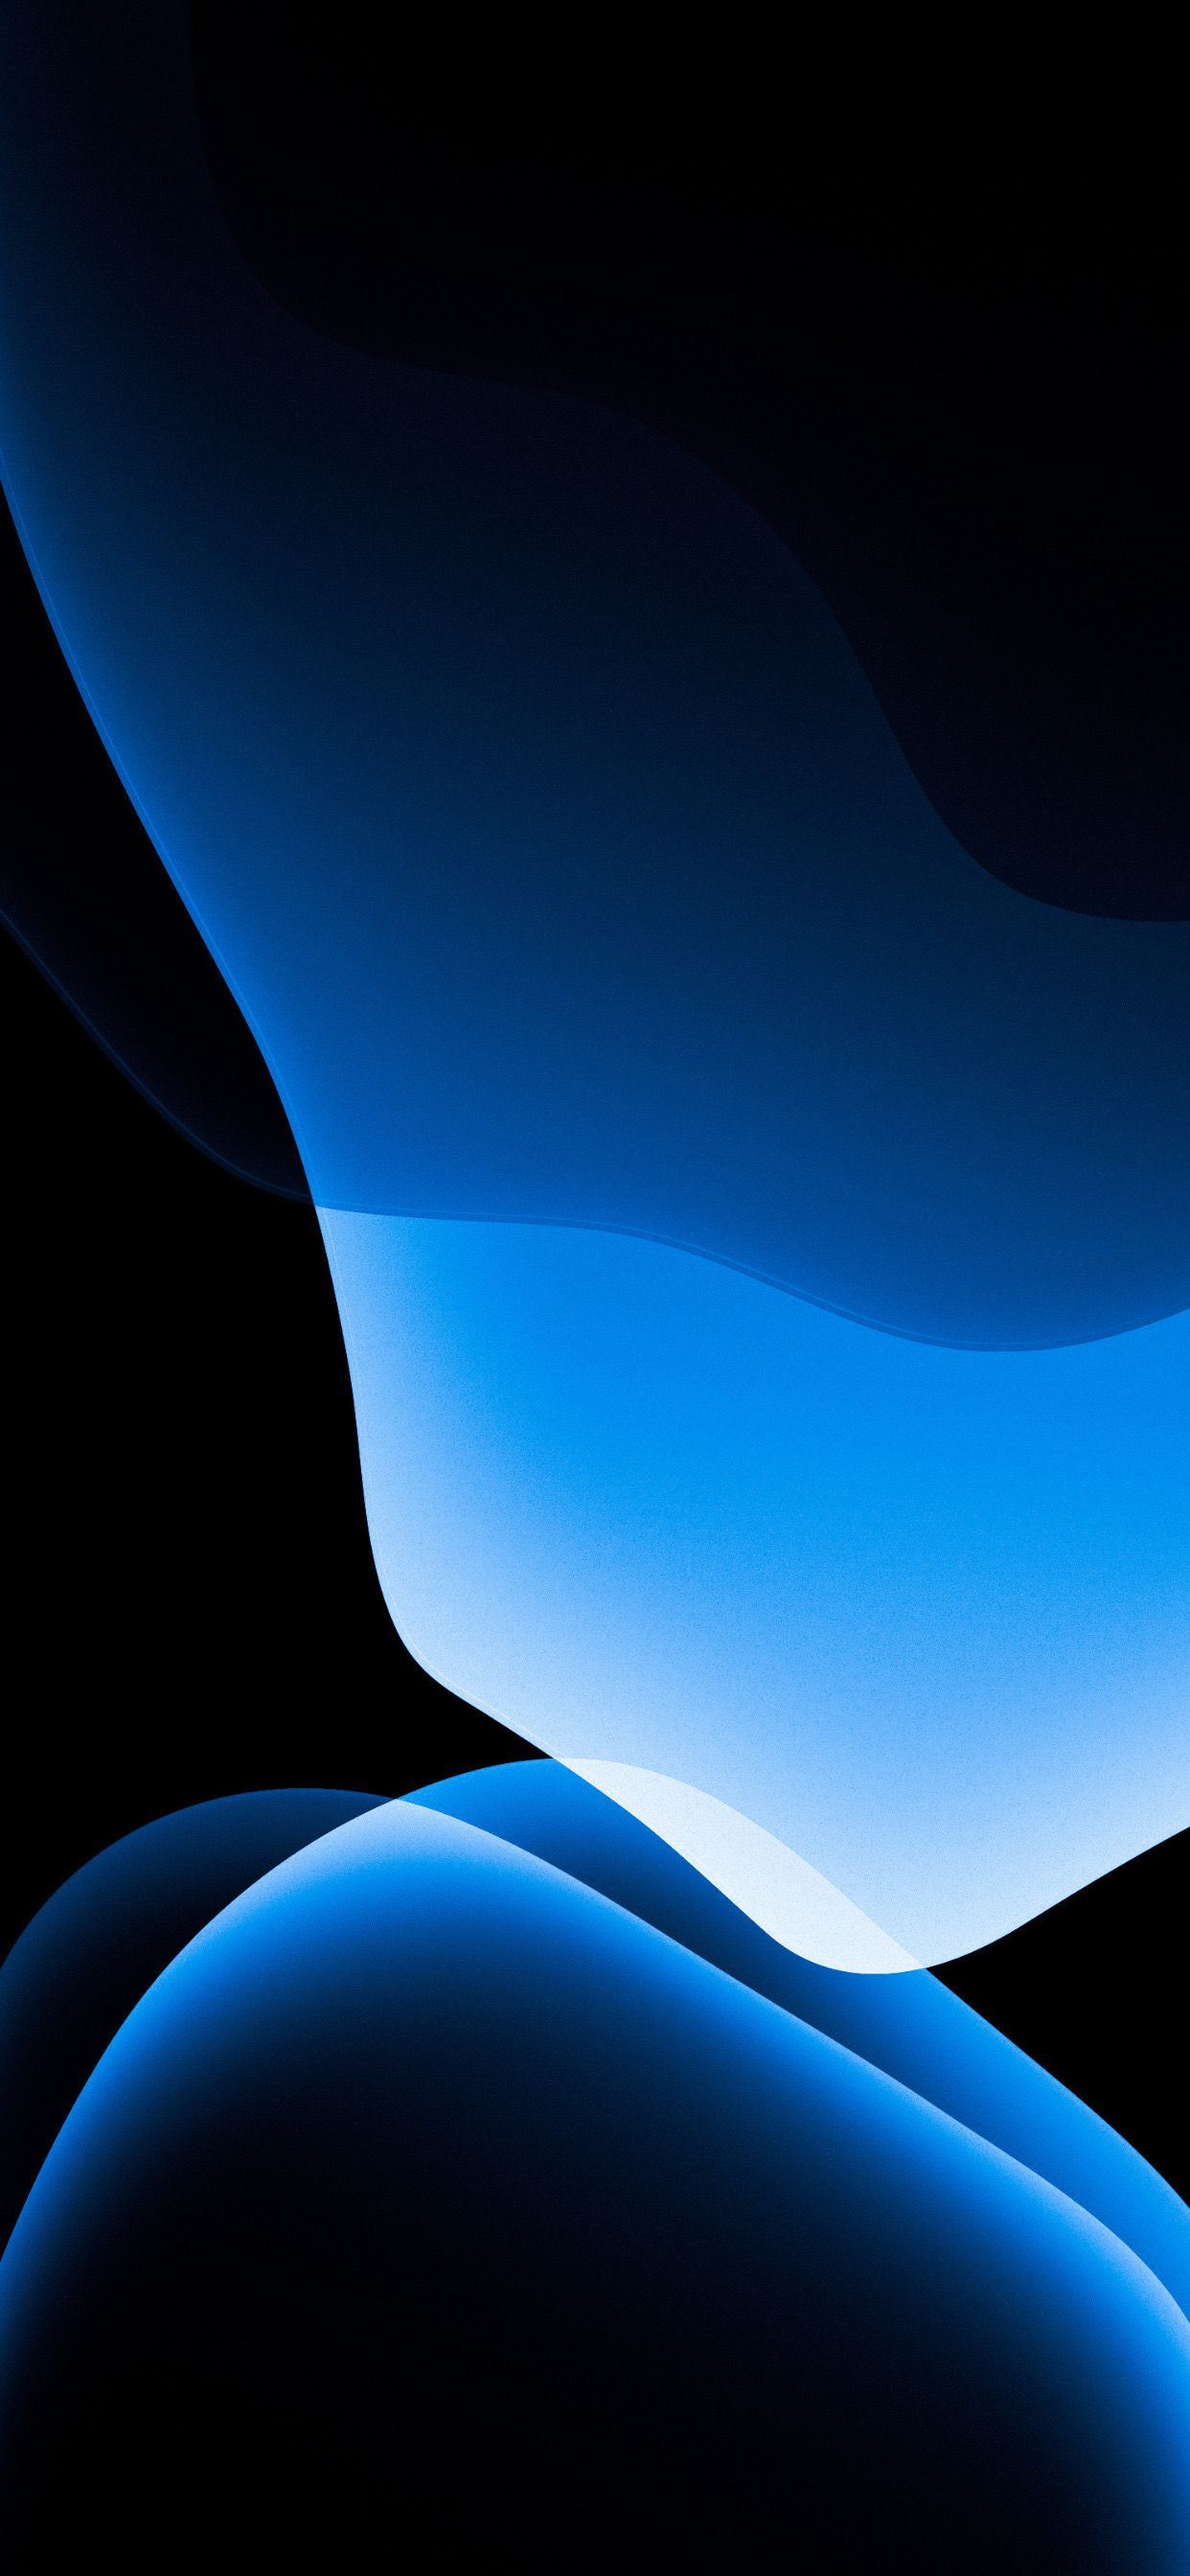 Blue iOS 13 redo by @AR72014 on Twitter #ios13wallpaper